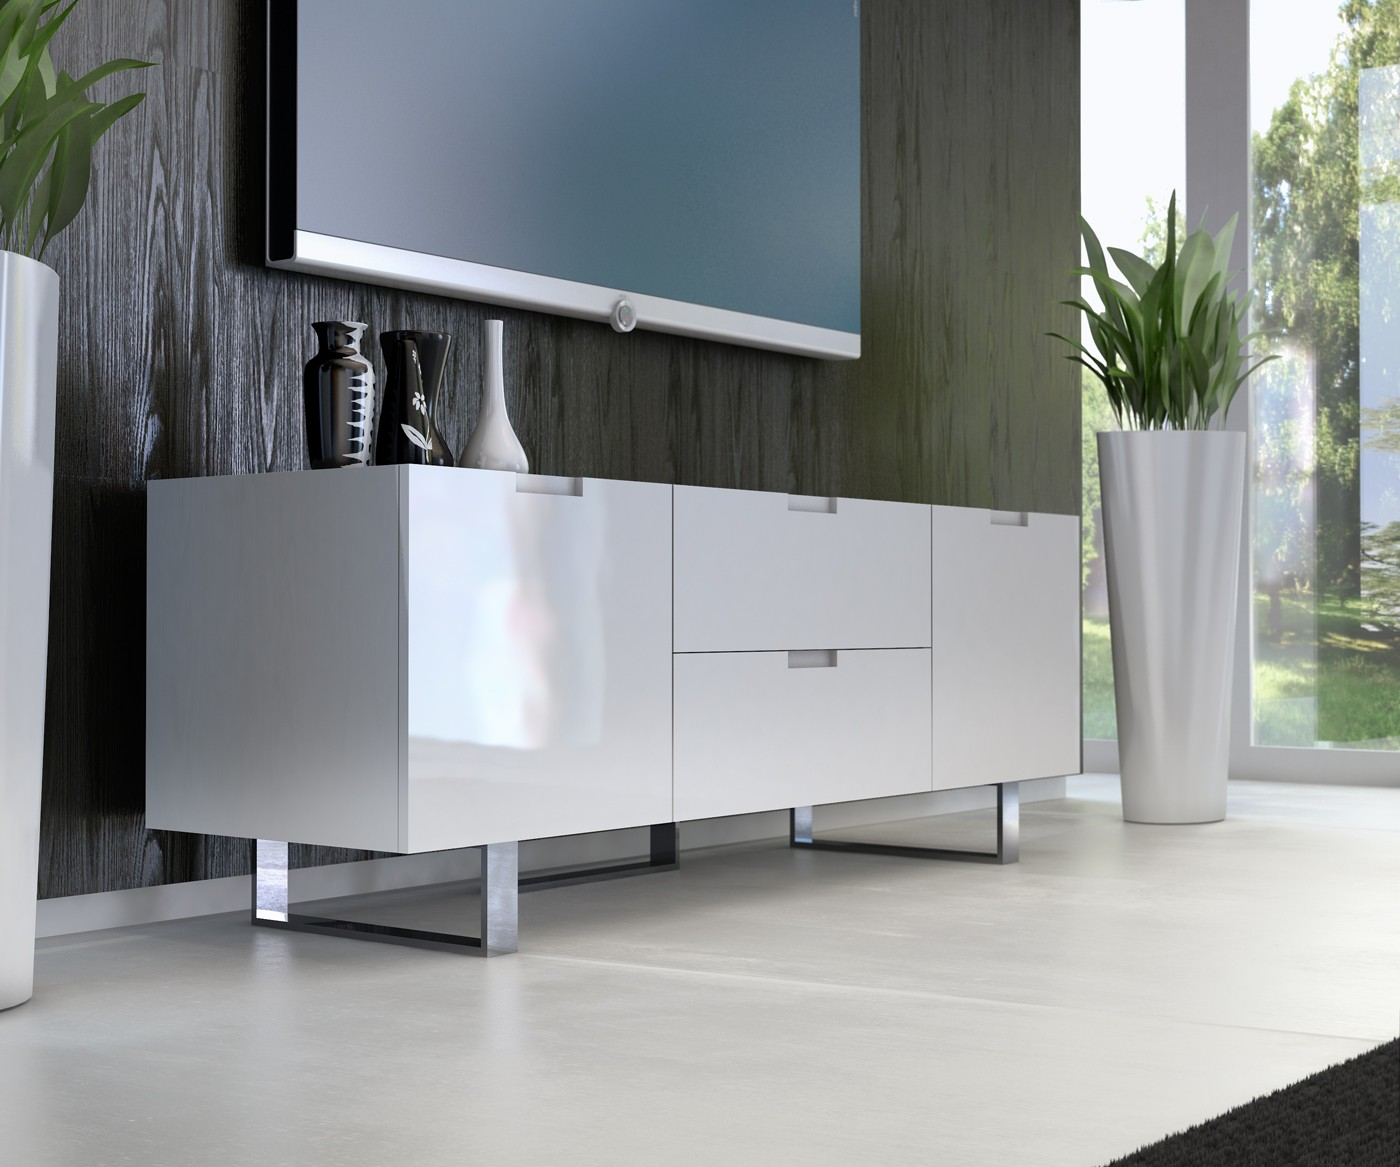 eldridge tv stand by modloft buy from nova interiors contemporary furniture store in boston ma. Black Bedroom Furniture Sets. Home Design Ideas